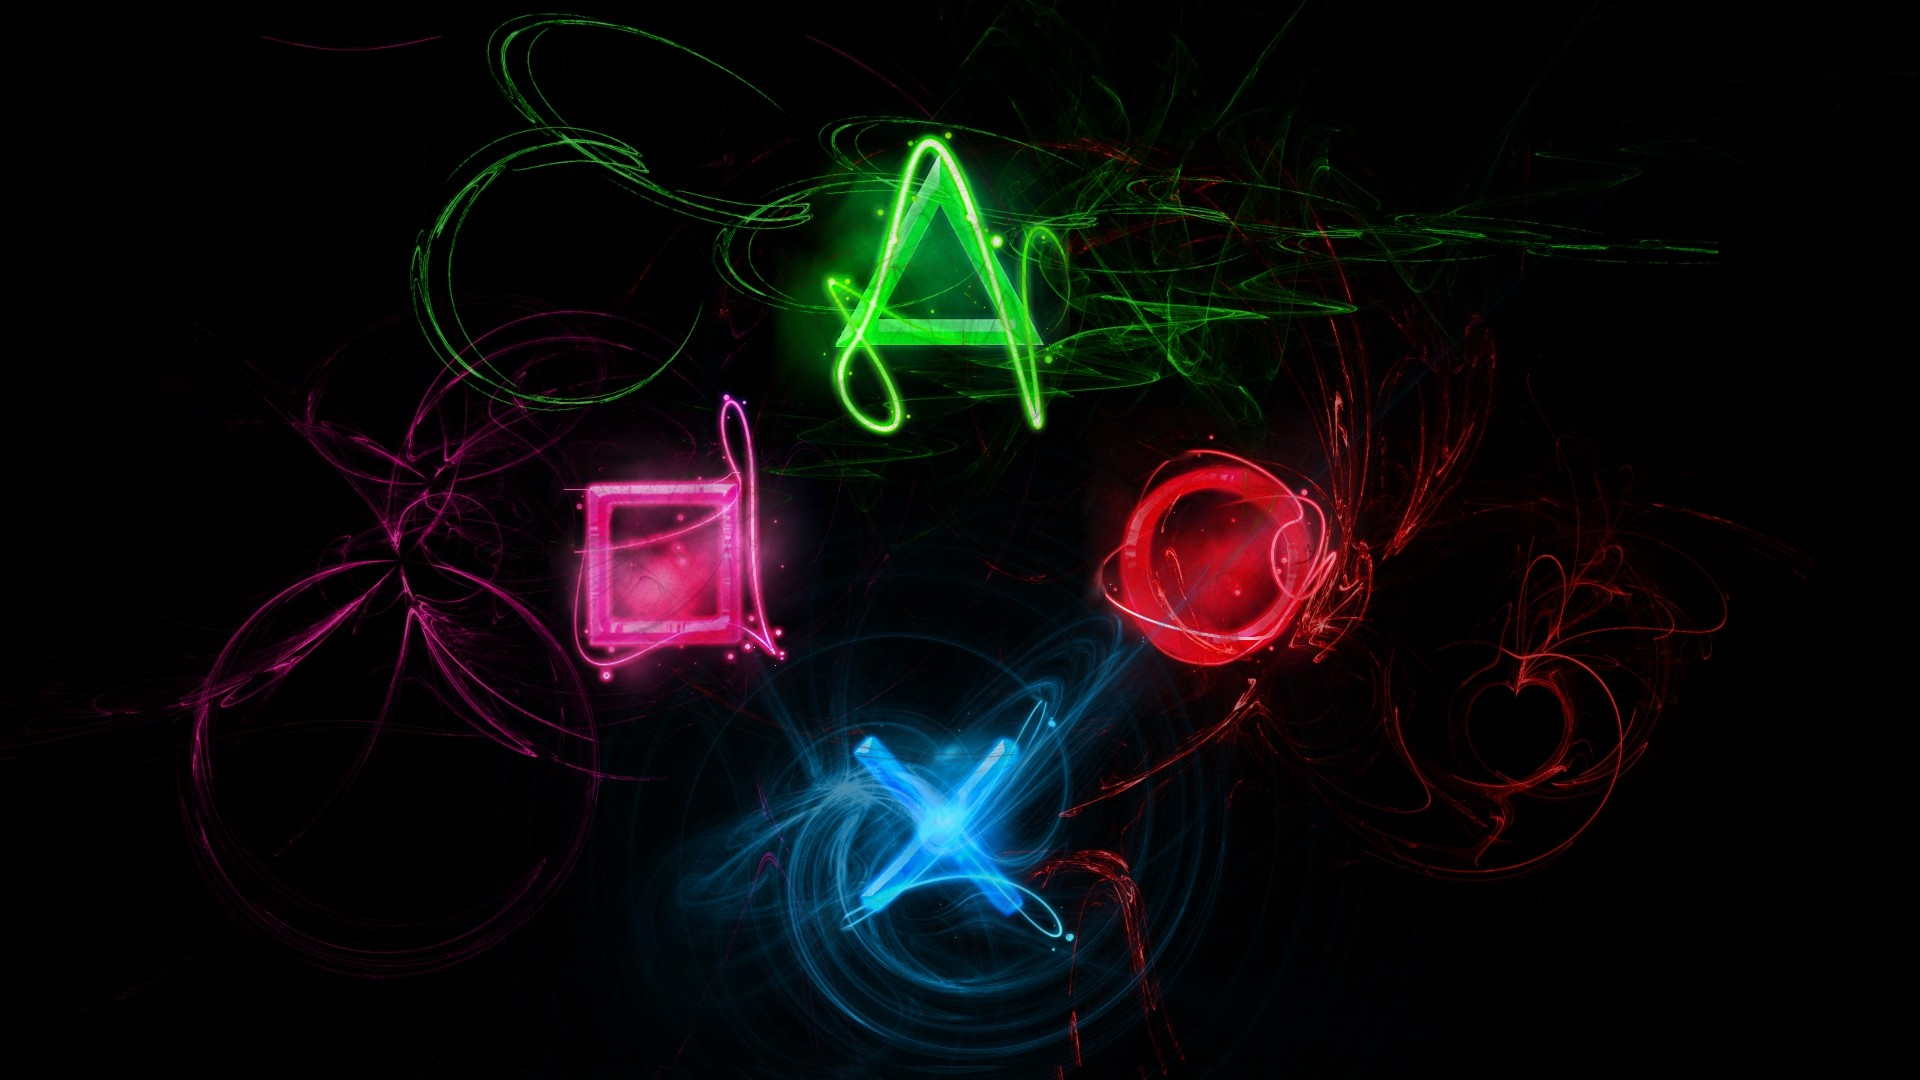 cool ps3 backgrounds (65+ images)